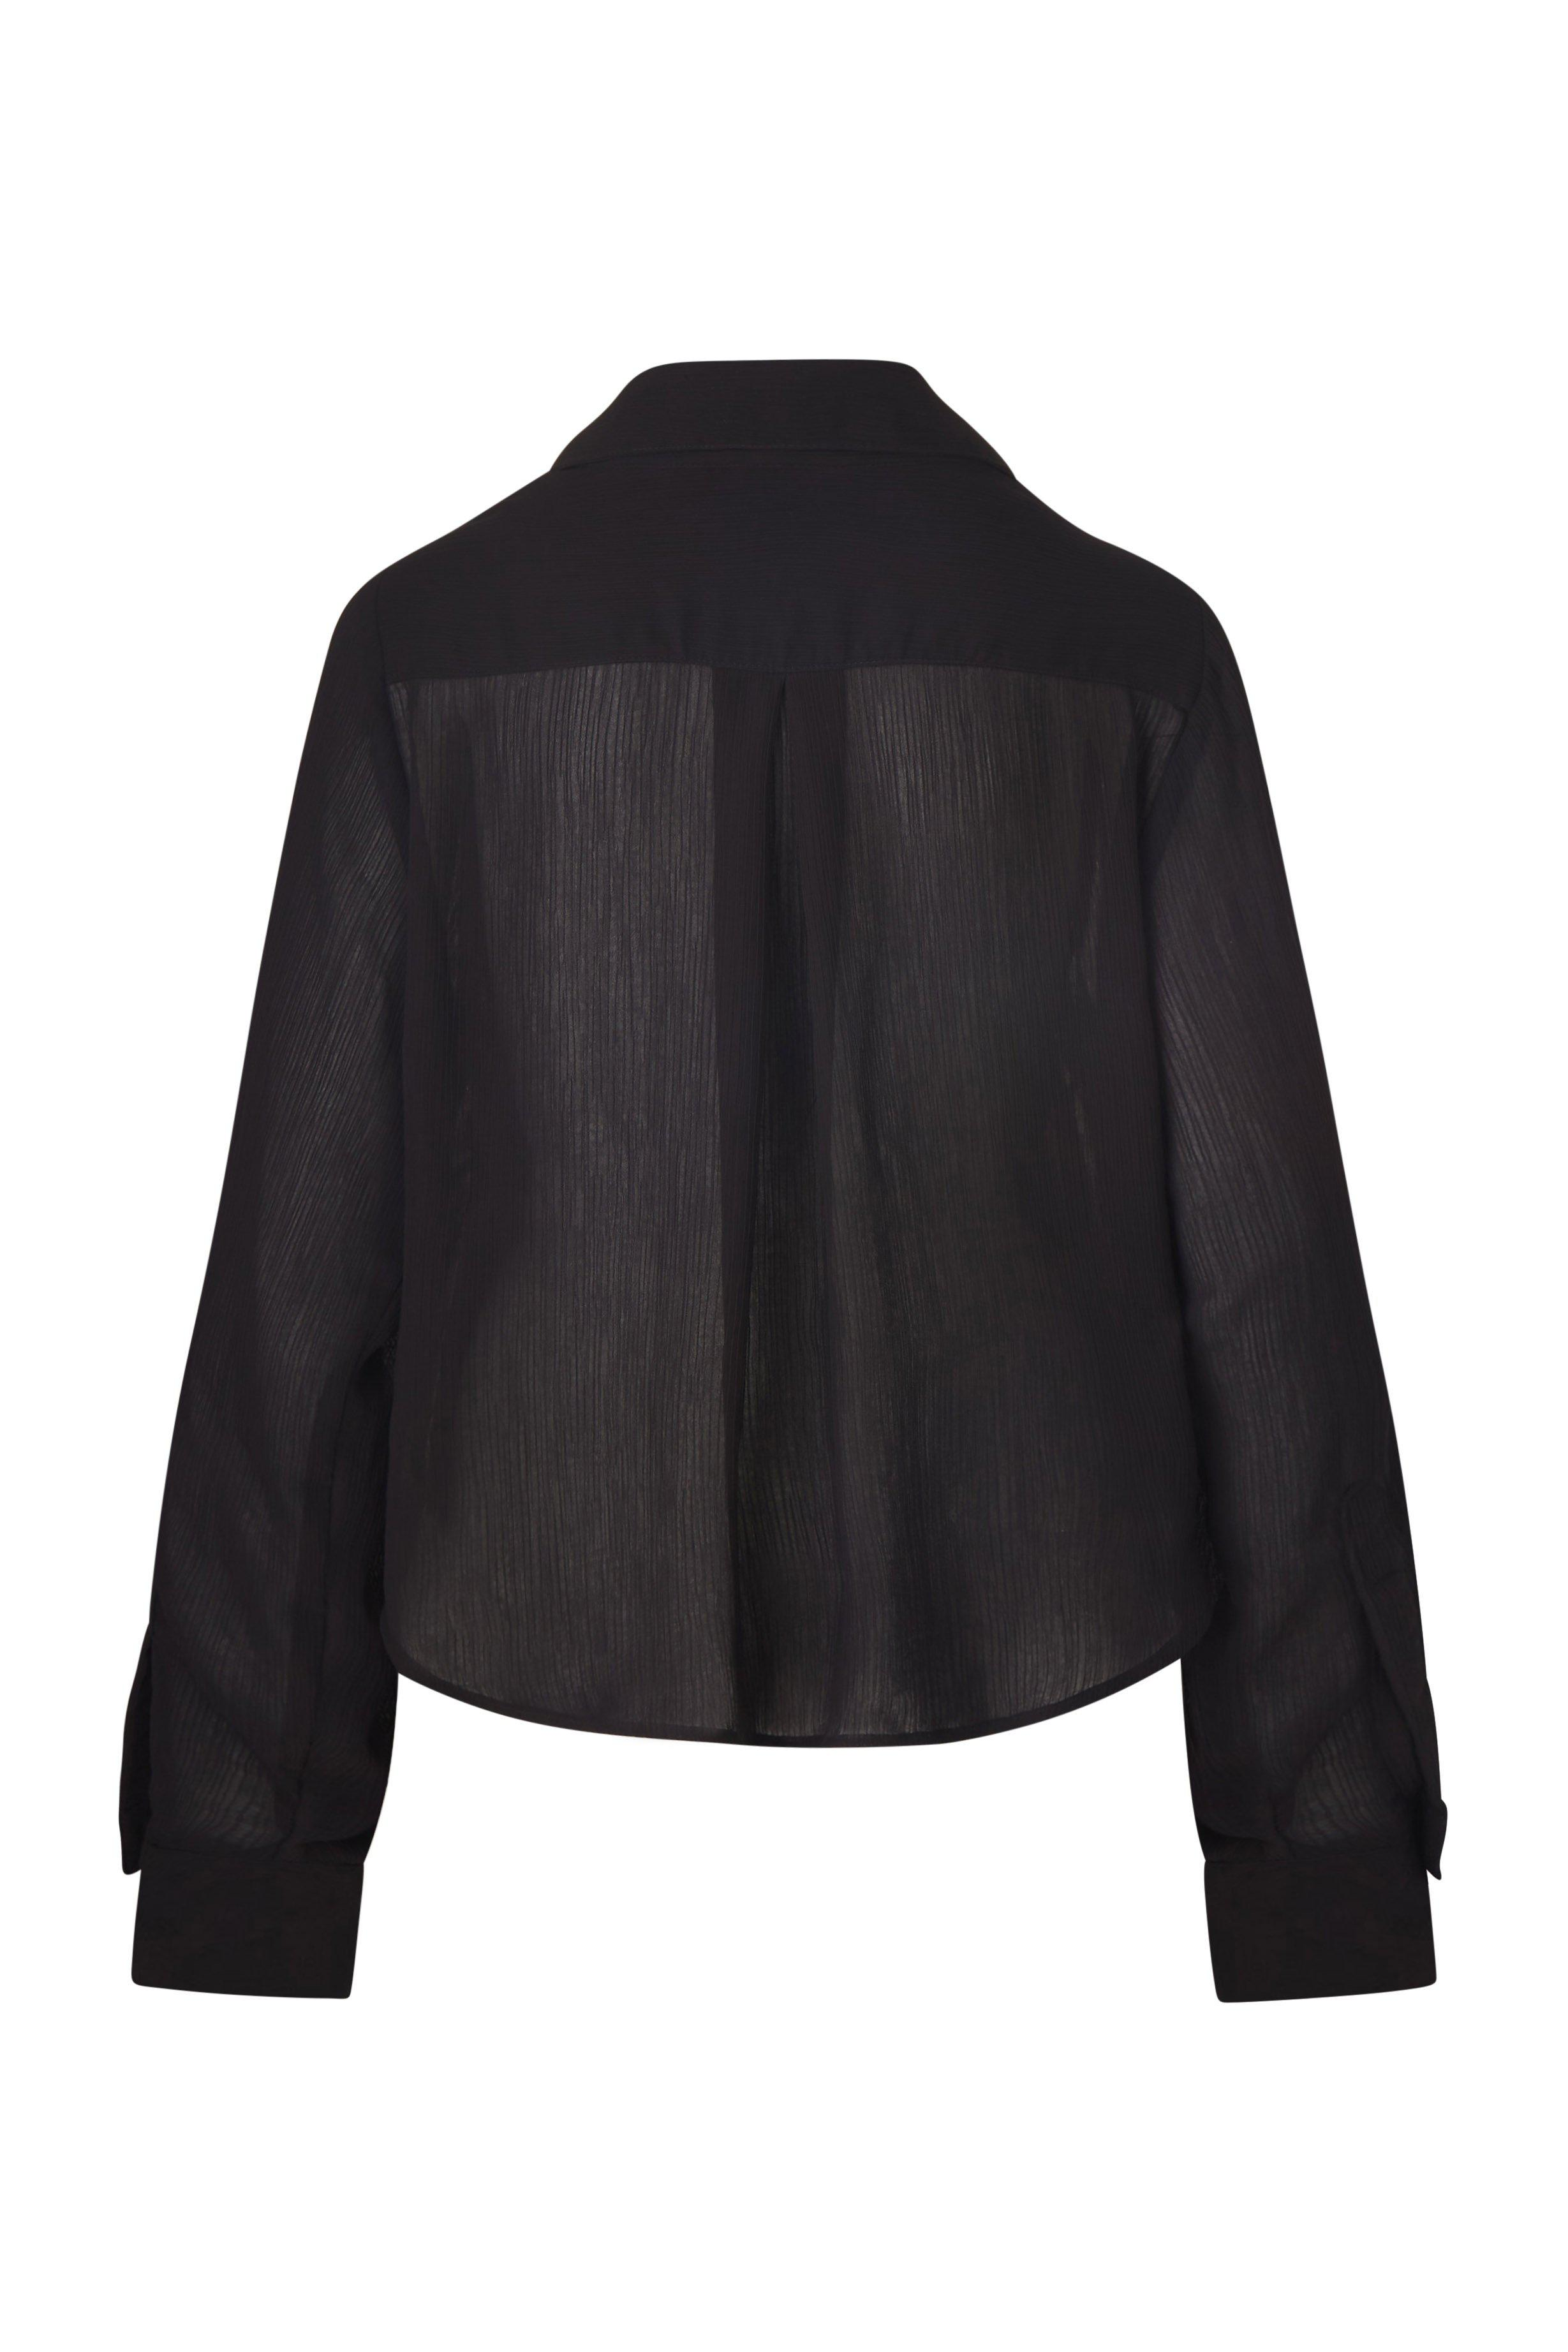 The Phillips Long Sleeve Button-Down Shirt in Sheer Yoryu Crinkle 4